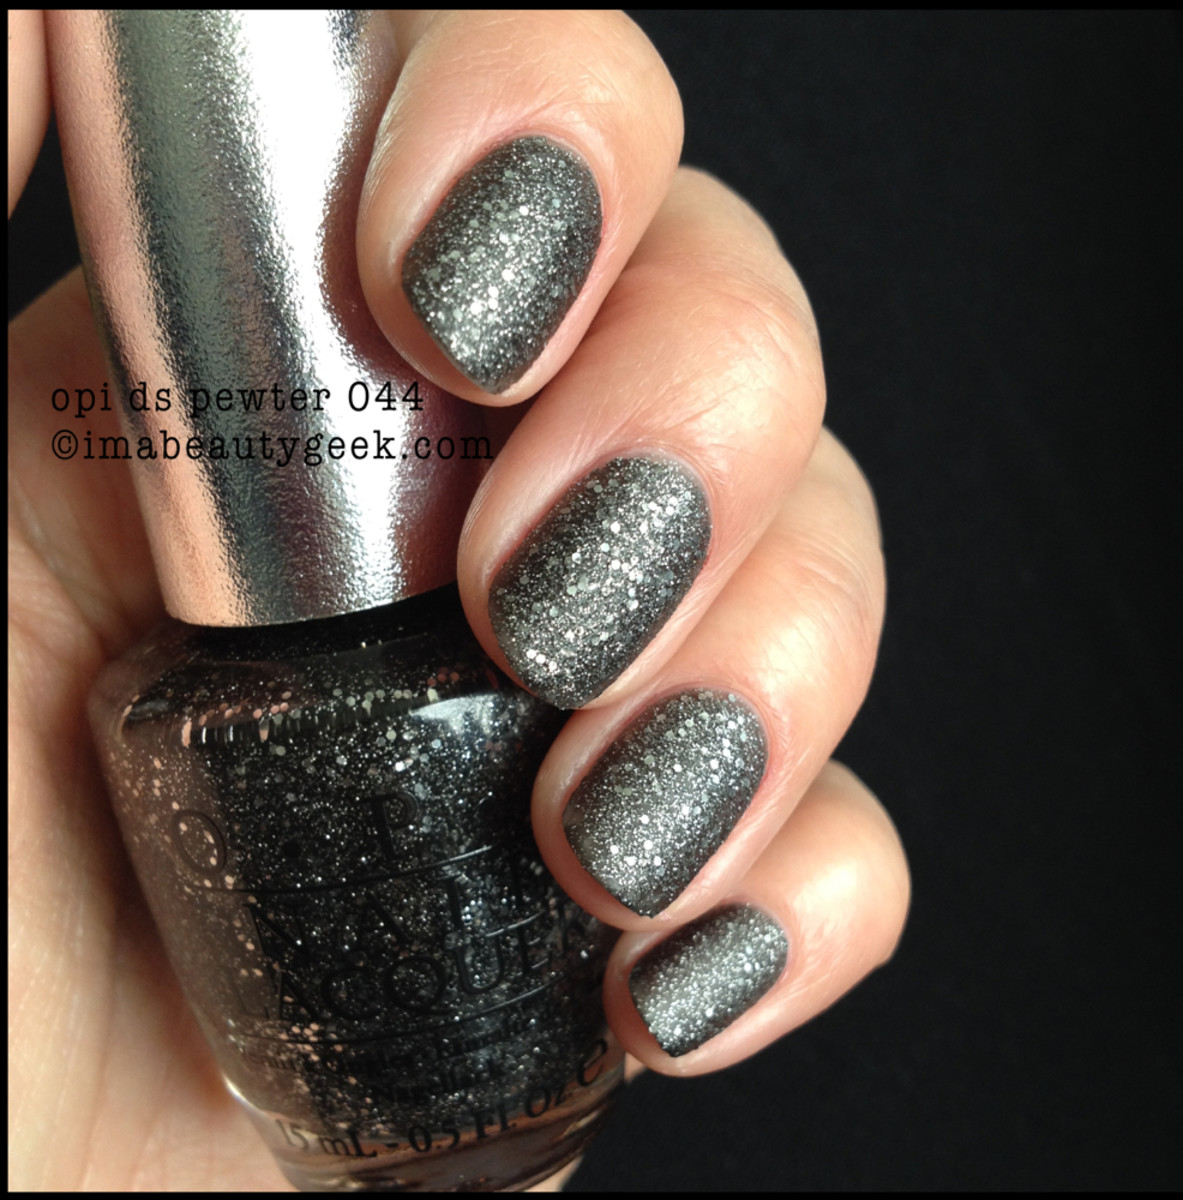 OPI DS Pewter 44